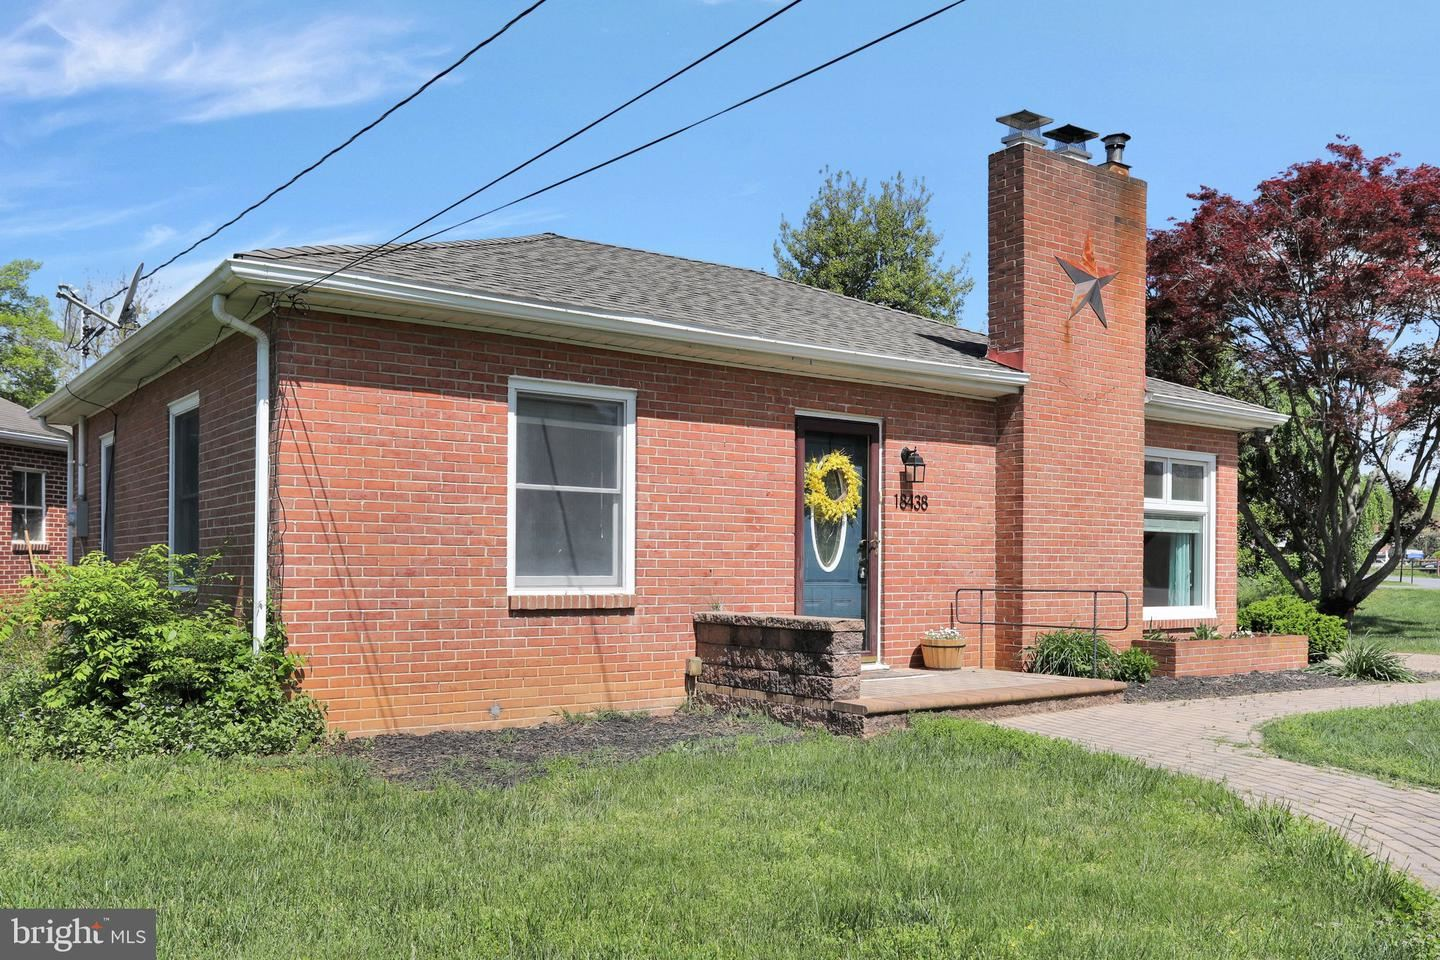 Photo of 18438 WOODSIDE DR, HAGERSTOWN, MD 21740 (MLS # MDWA179614)